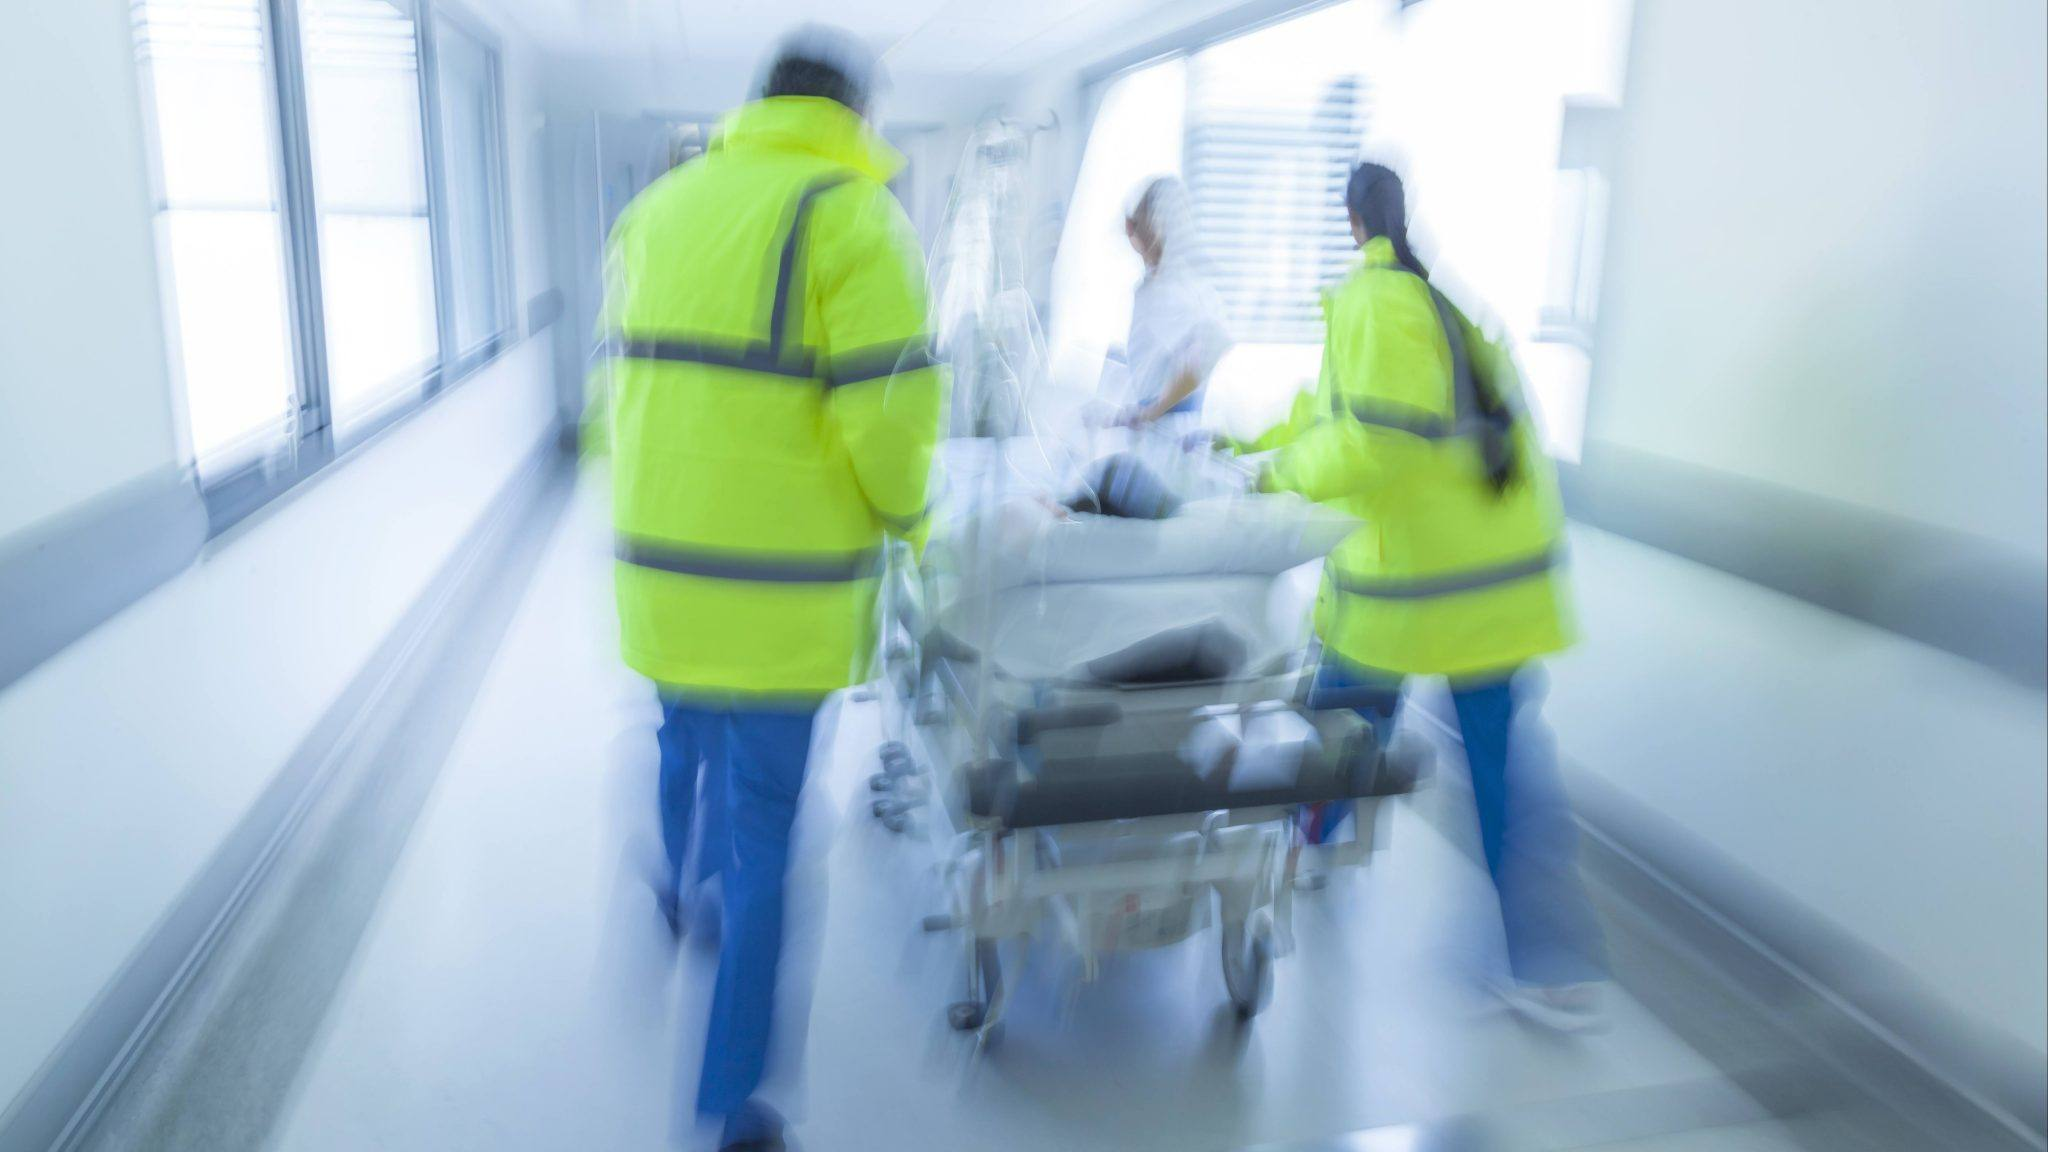 slightly-out-of-focus-image-of-a-hospital-hallway-with-emergency-staff-walking-quickly-pushing-a-gurney-with-an-injured-patient-16x9-1-2048x1152